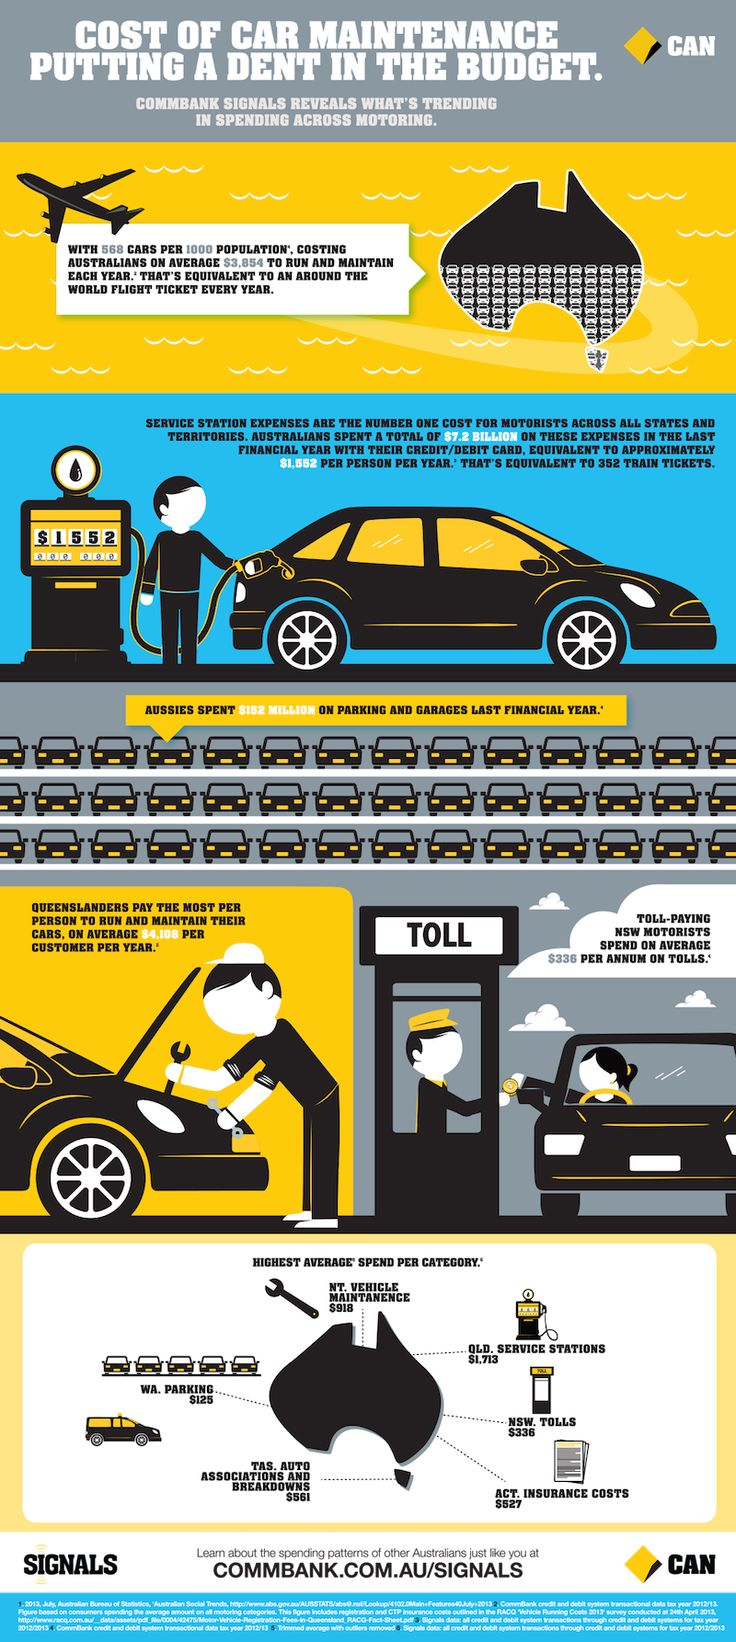 Cost of car maintenance infographic